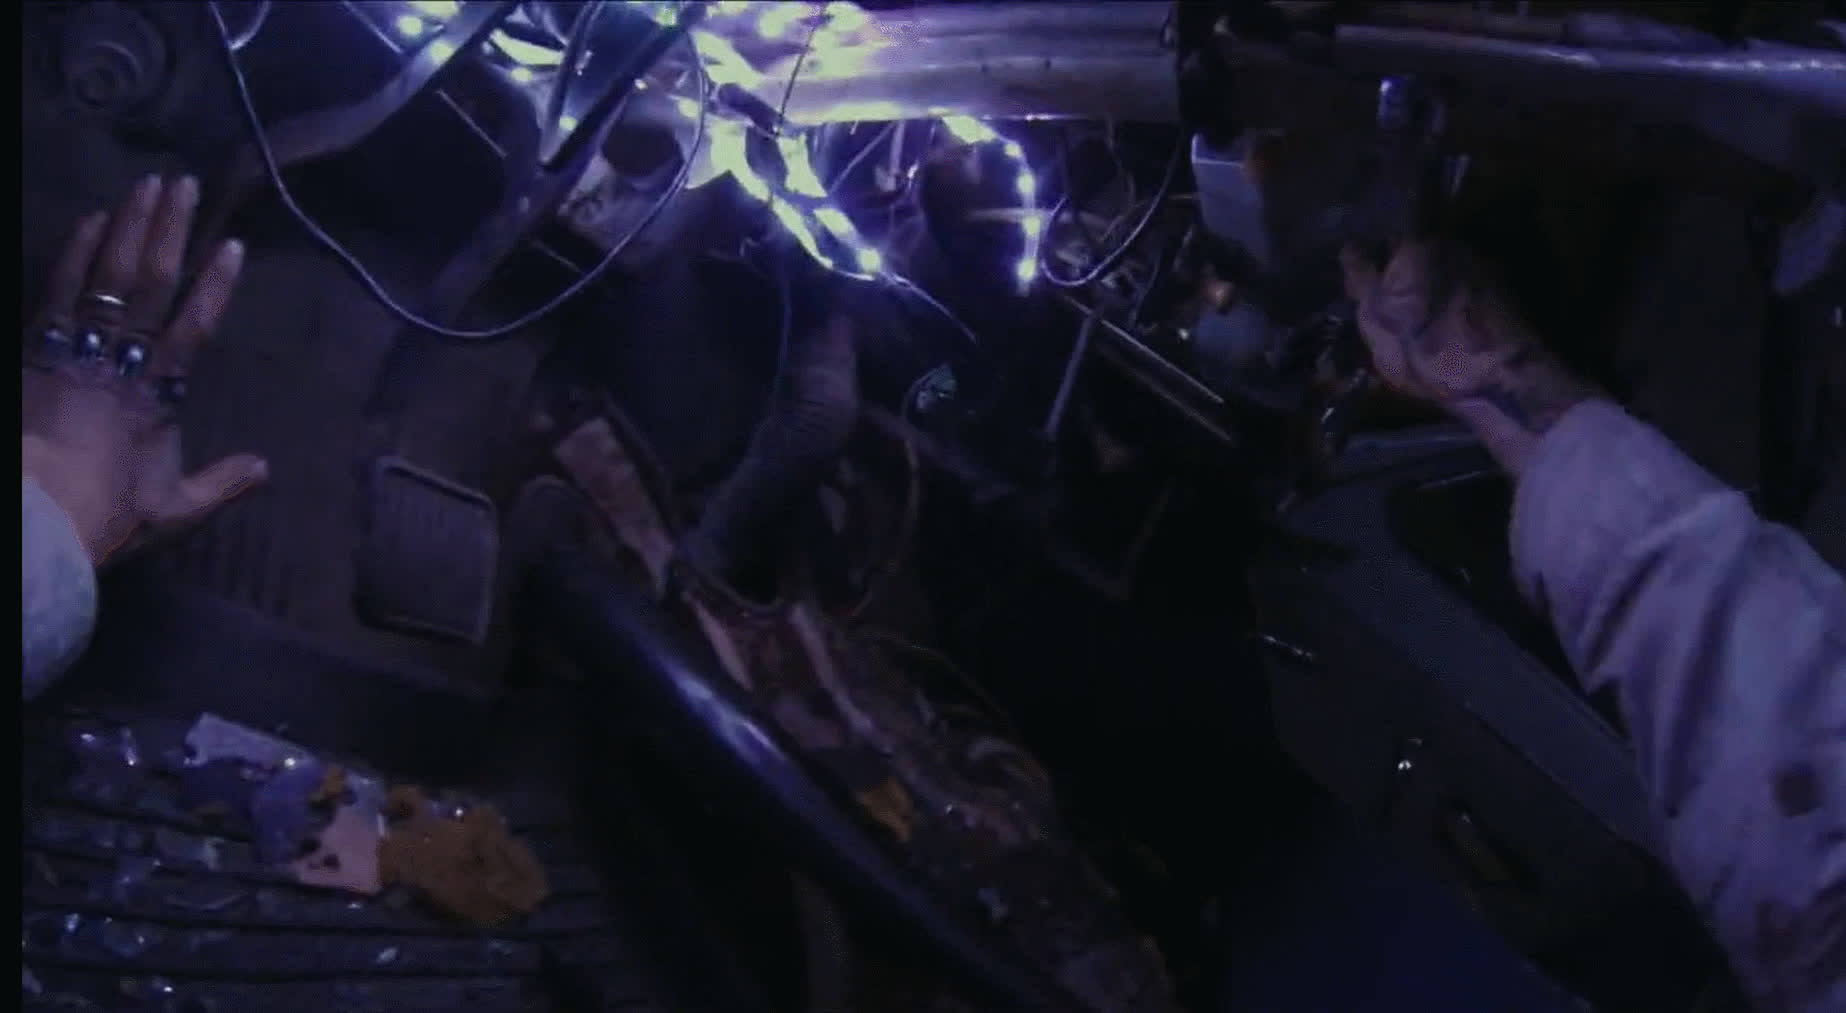 respectthreads, 6 - [Intel] Rigs up a car as a distraction GIFs